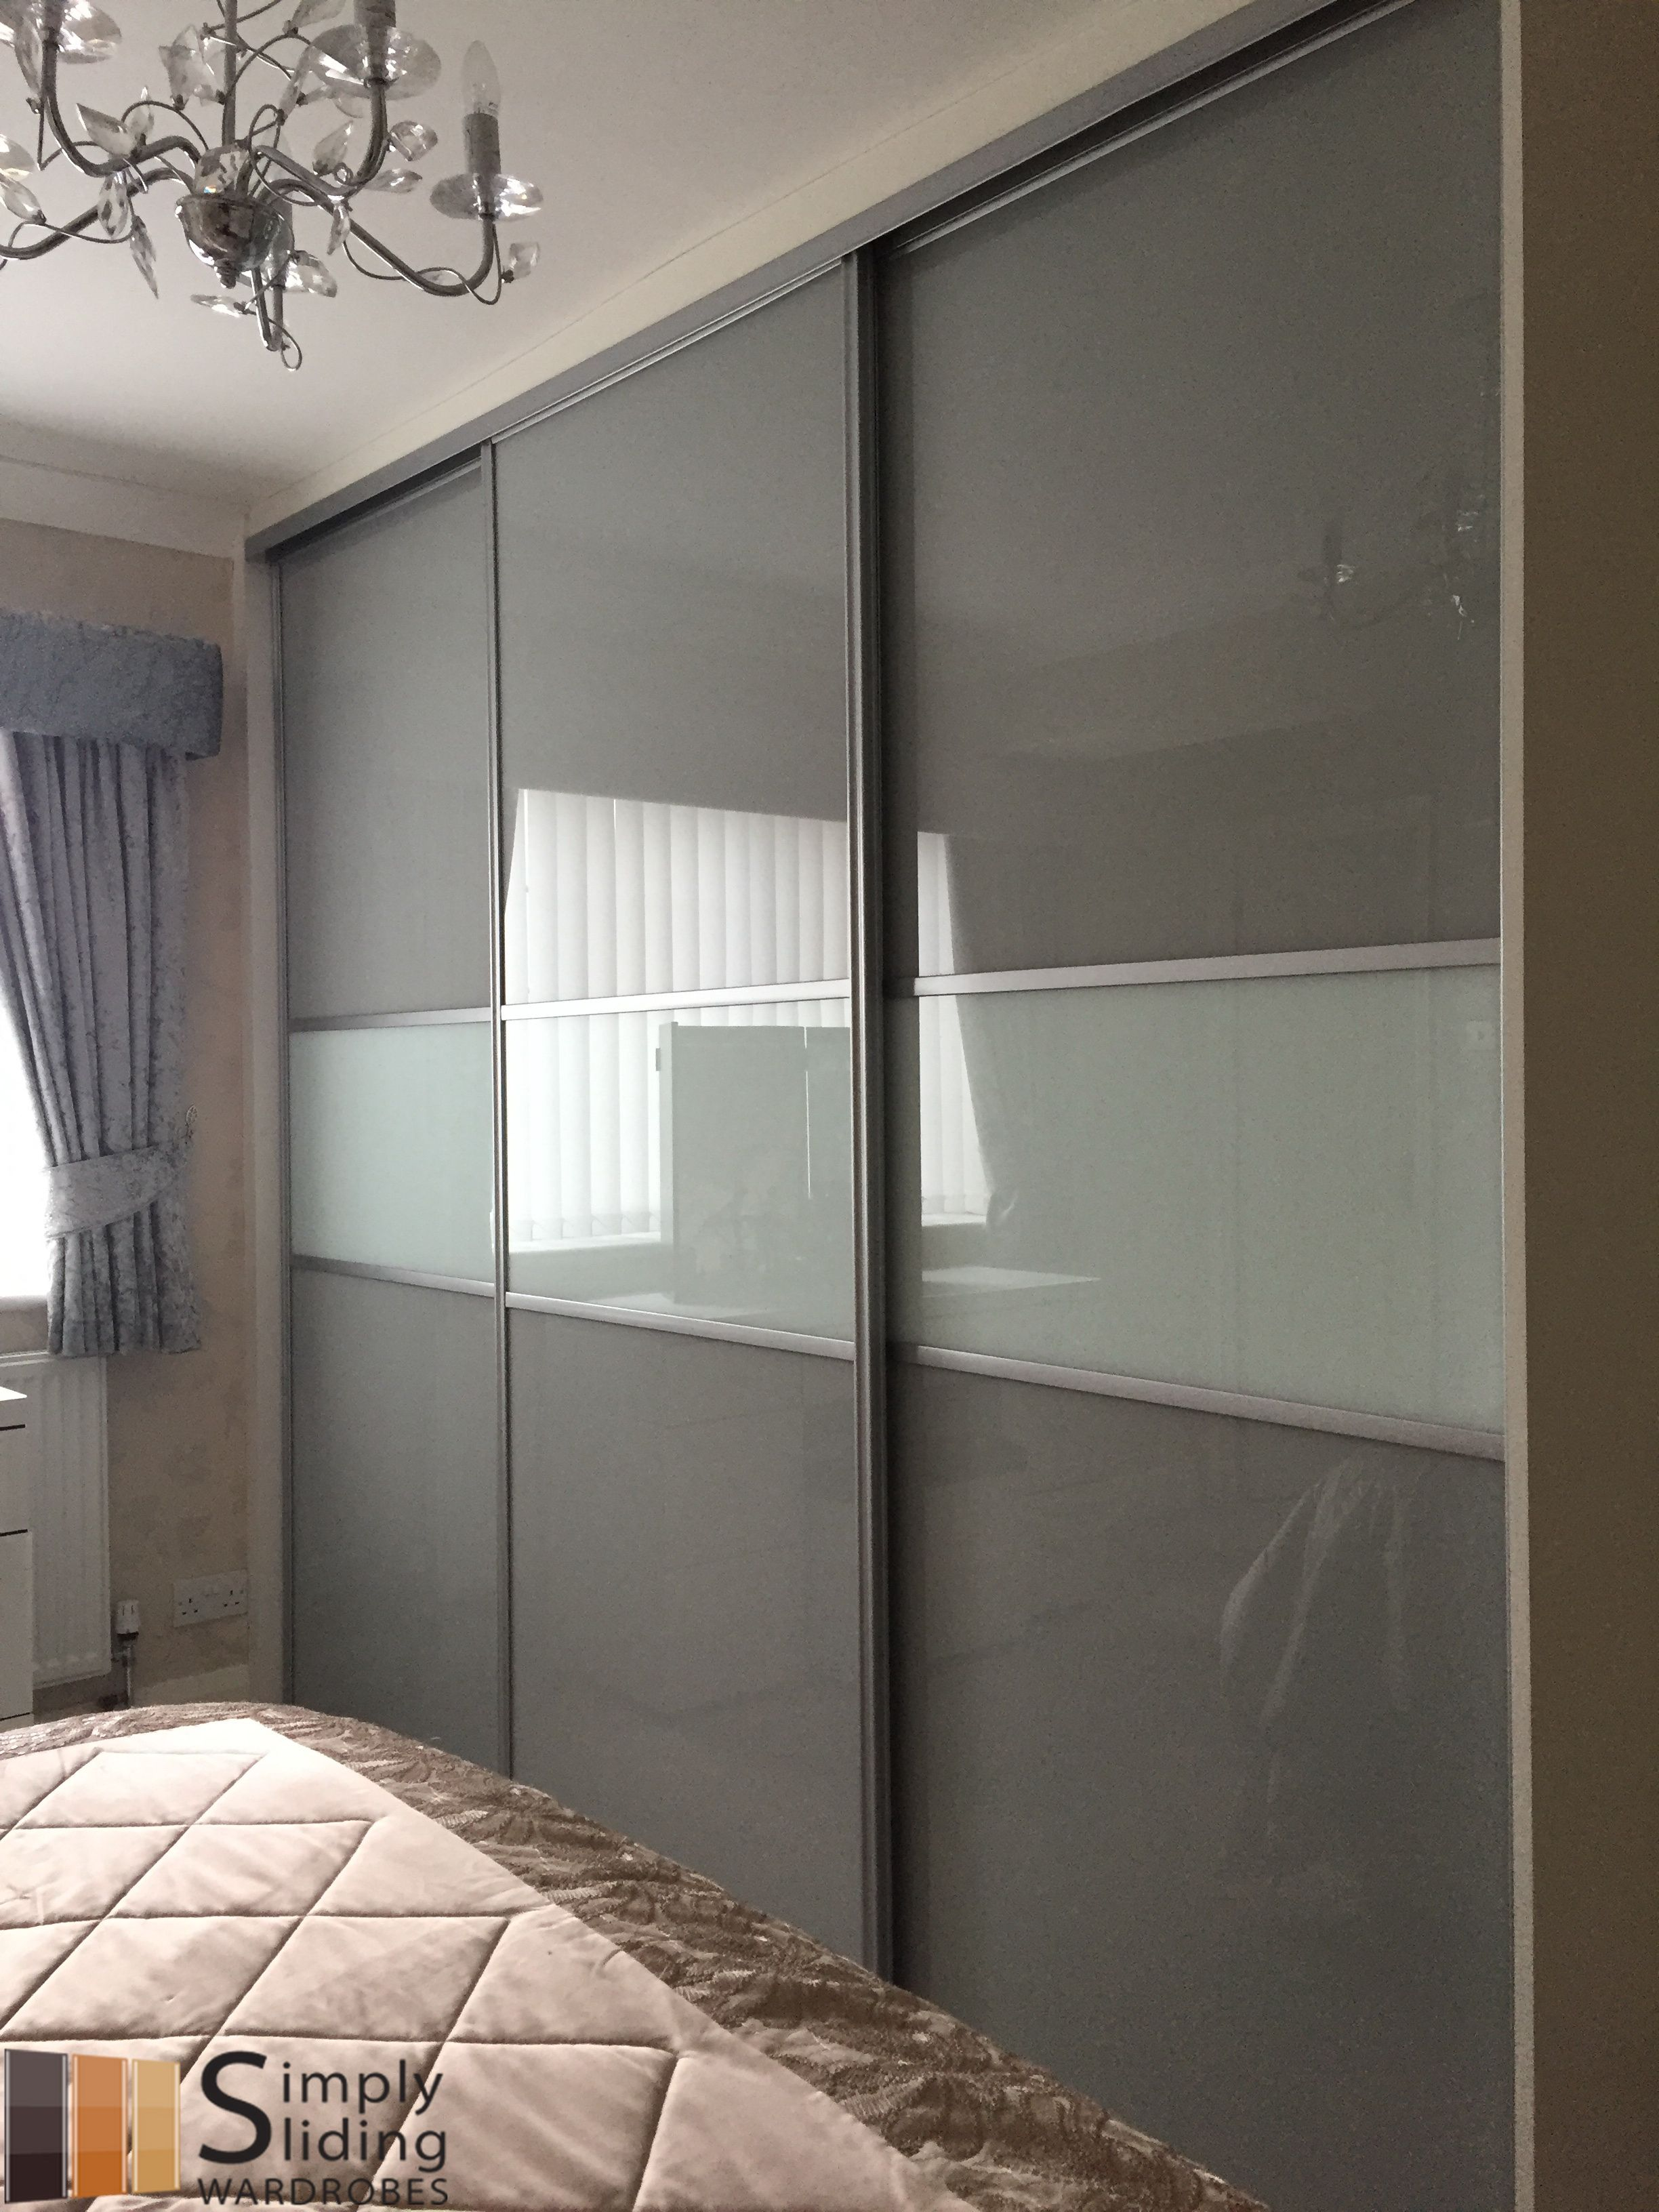 One Of Our Multi Panel Grey Glass Sliding Door Wardrobes Wardrobe Door Designs Sliding Door Wardrobe Designs Wardrobe Design Bedroom